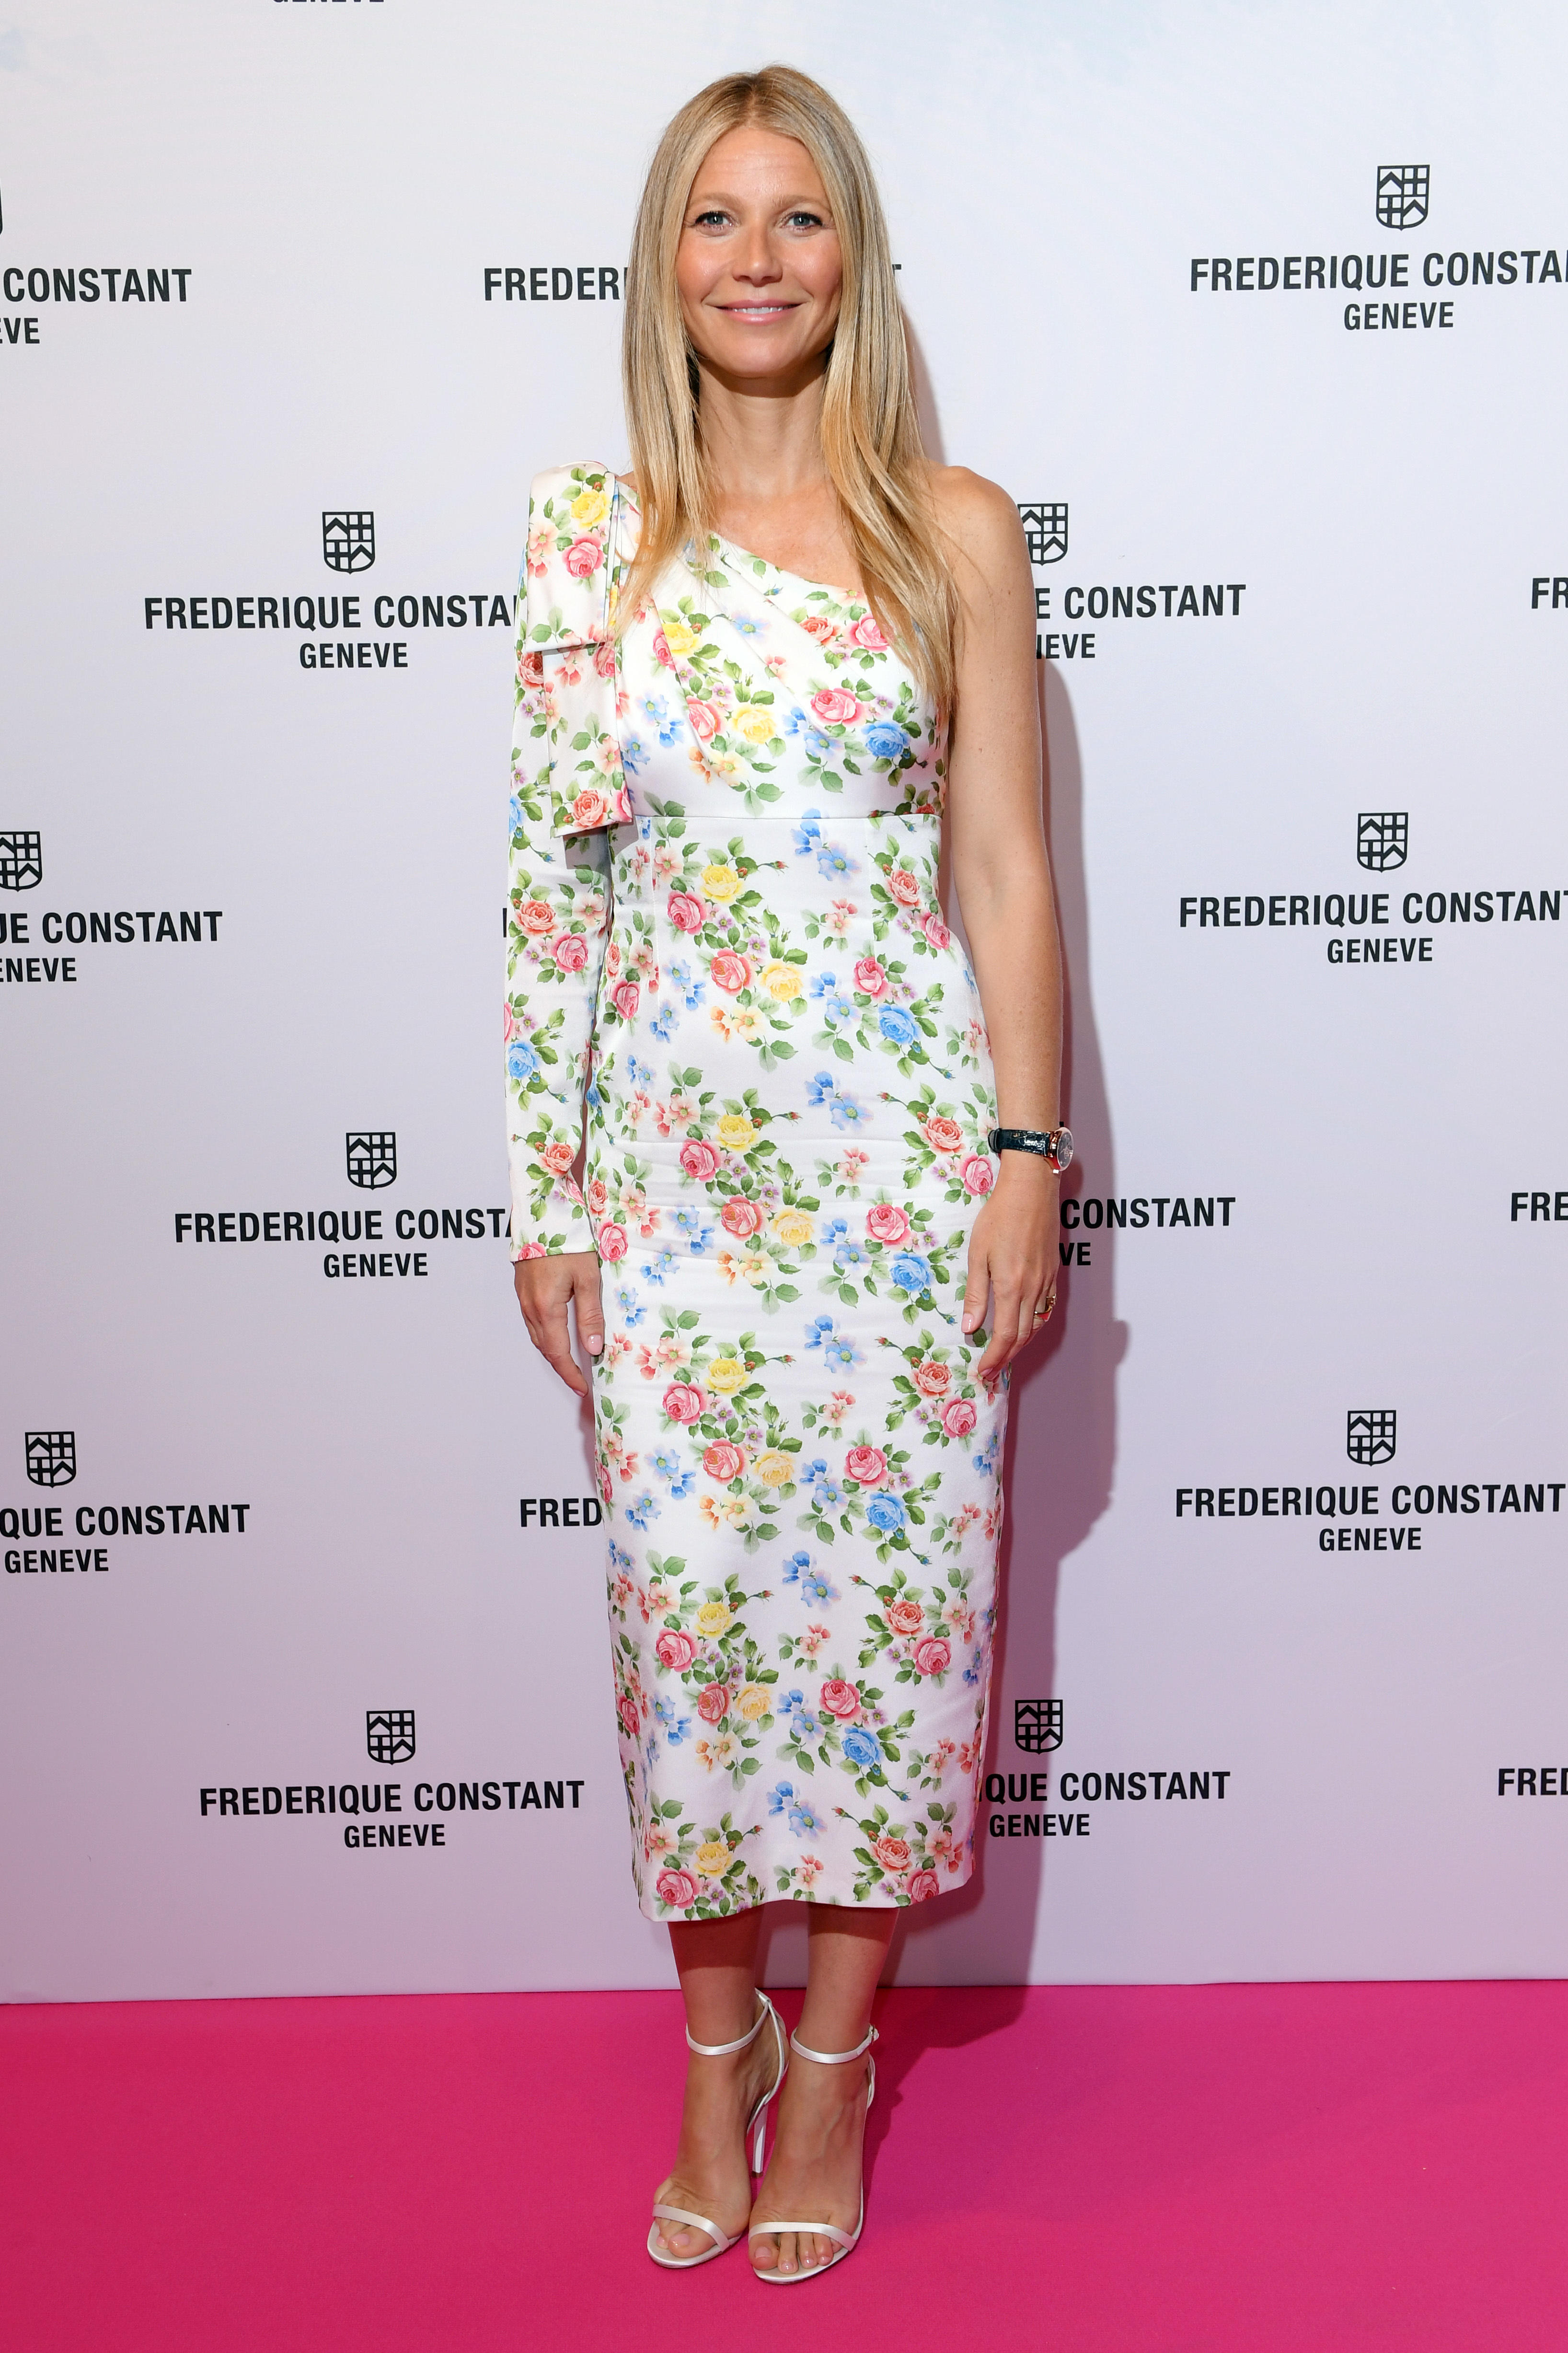 Gwyneth Paltrow appears at the Gwyneth Paltrow x Frederique Constant watch launch party in London on June 21, 2018.